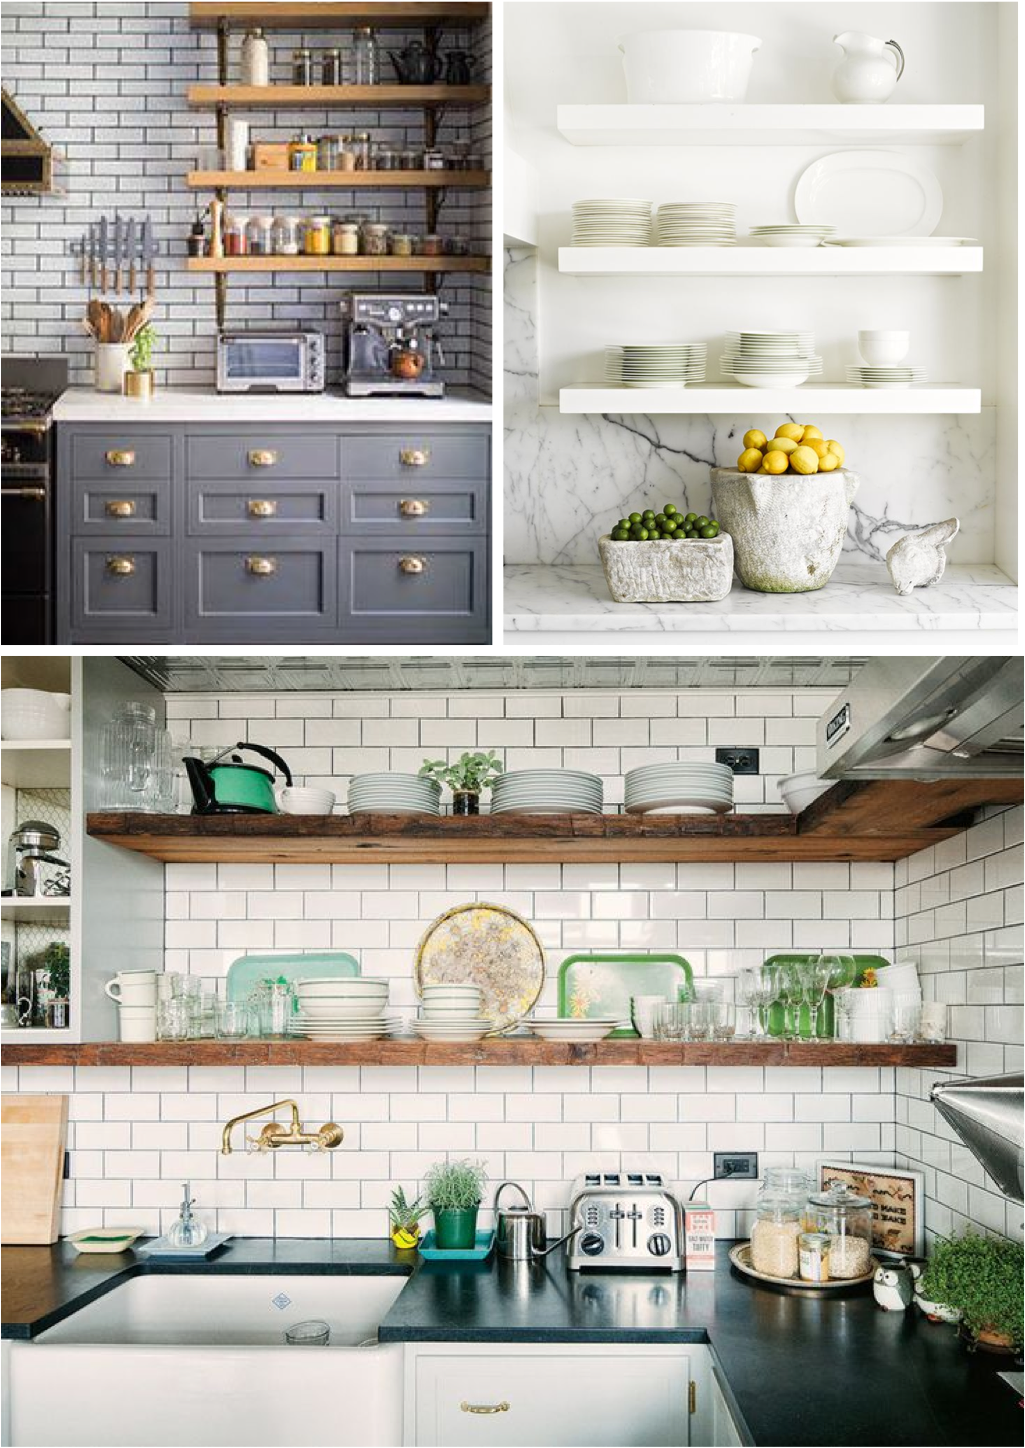 The Benefits Of Open Shelving In The Kitchen: Open Shelves In Kitchen Ideas